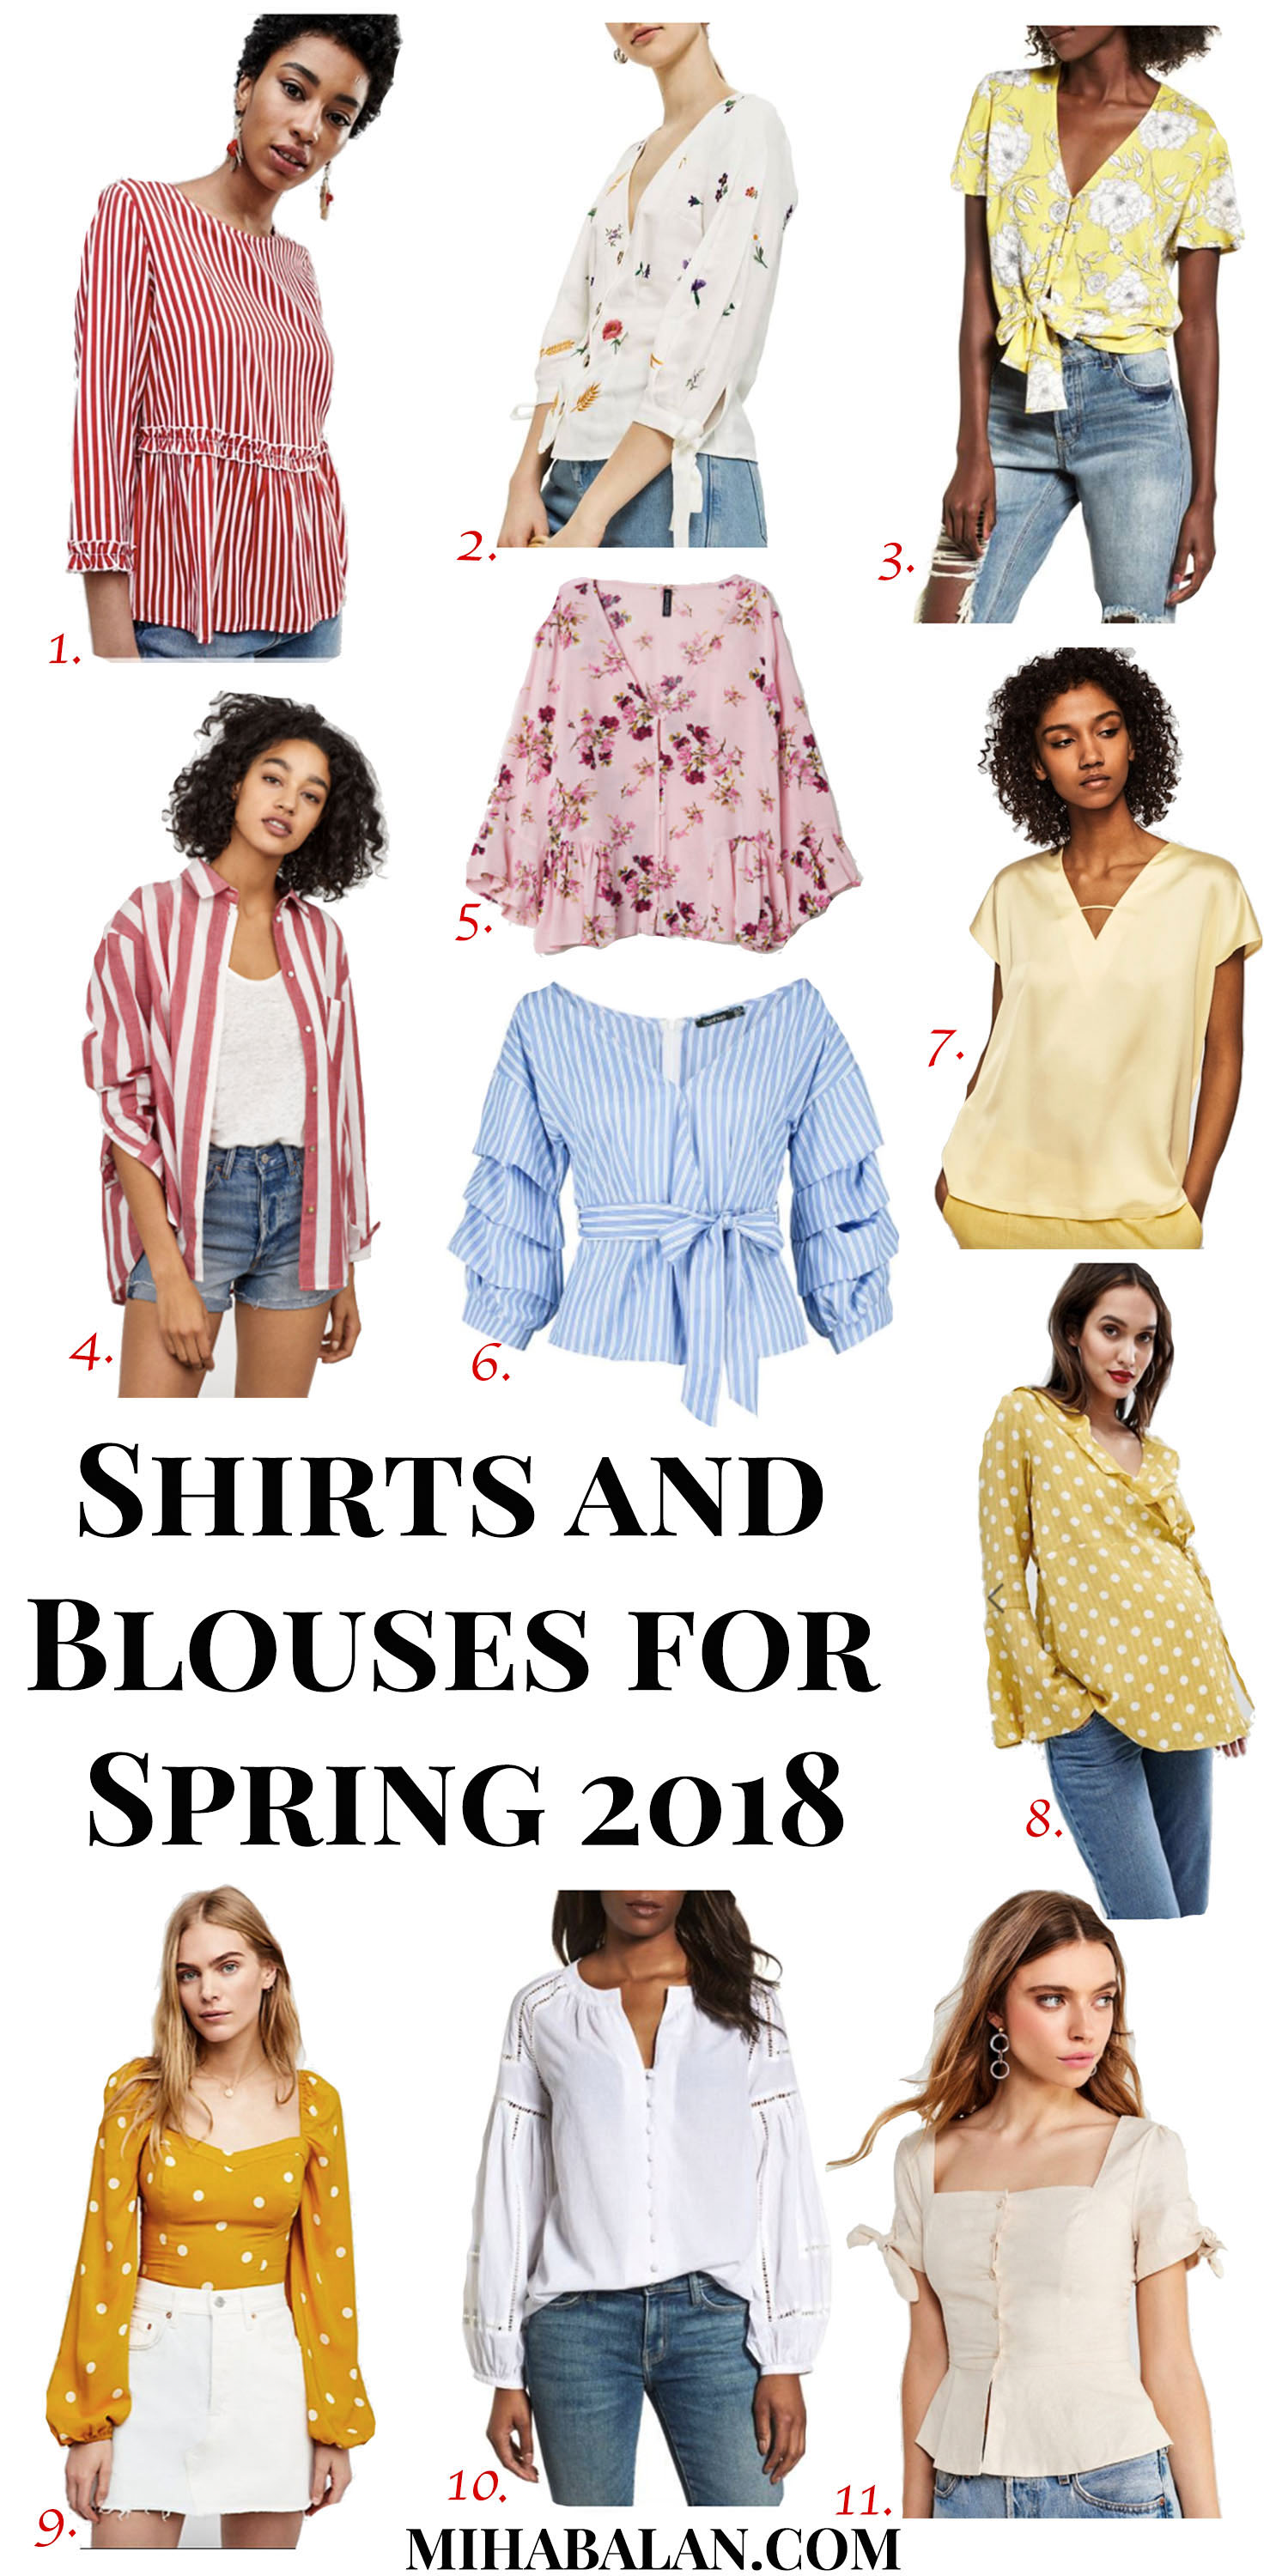 shirts and blouses for spring 2018